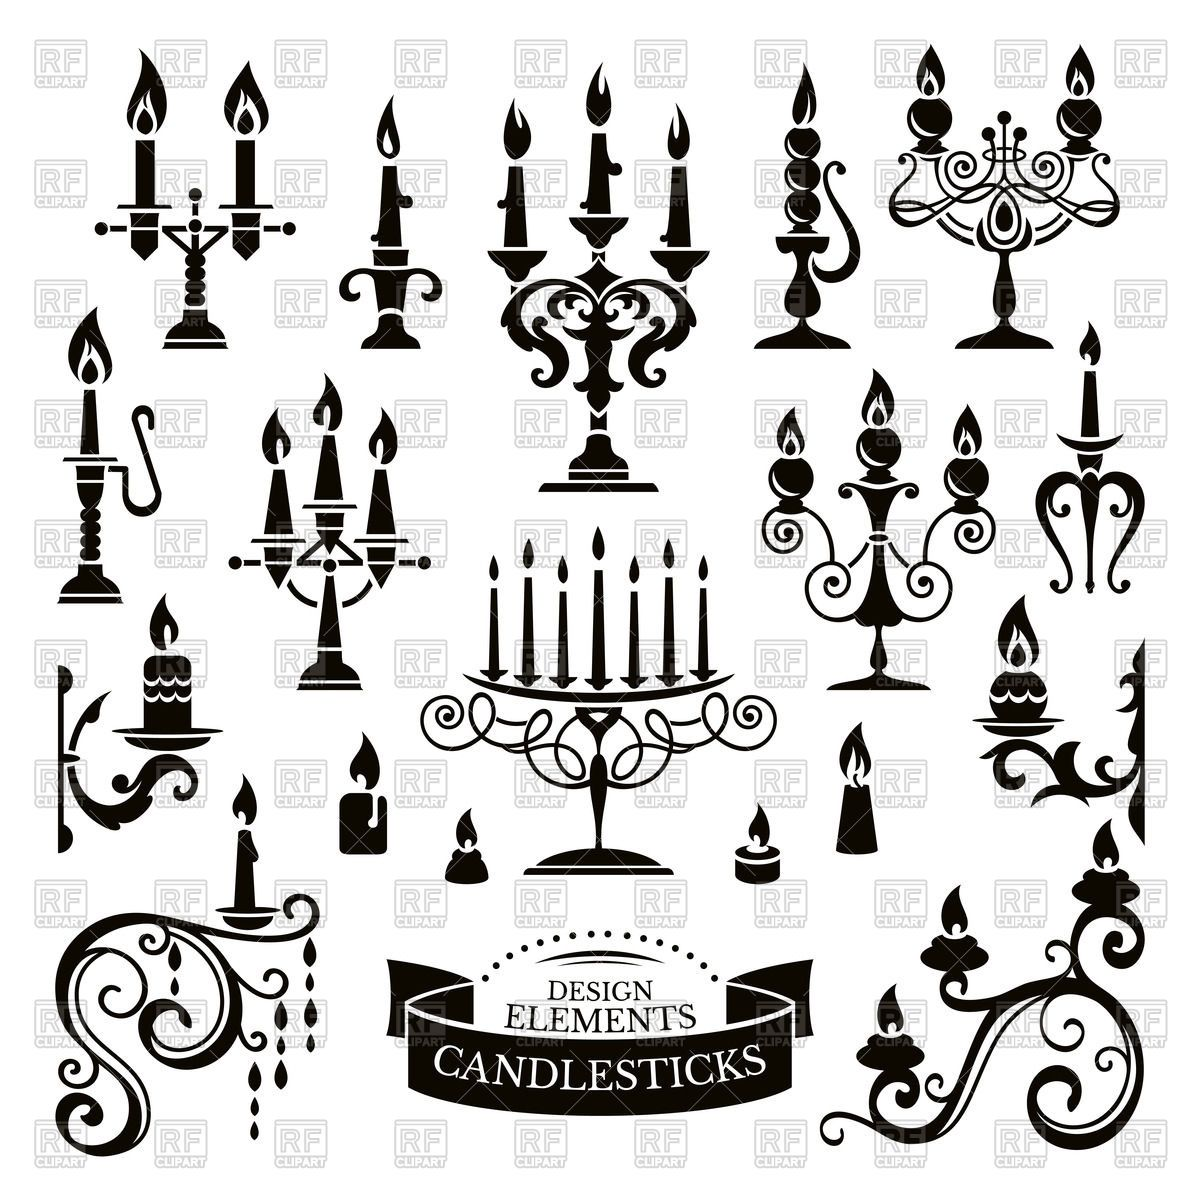 Silhouettes Of Candlesticks And Candles Vector Image